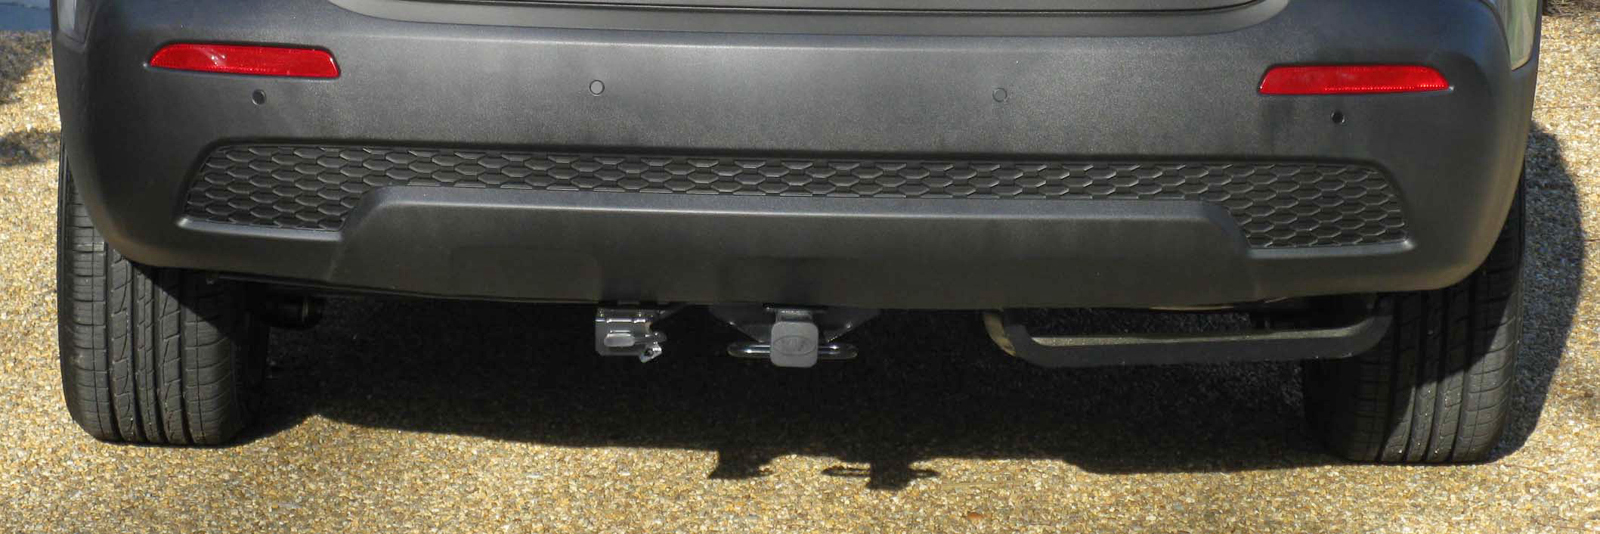 2011 Sorento Trailer Hitch Page 7 Kia Forum 2016 Hitches Wiring On Soul Tow Location Click Image For Larger Version Name Stock 012 Copy